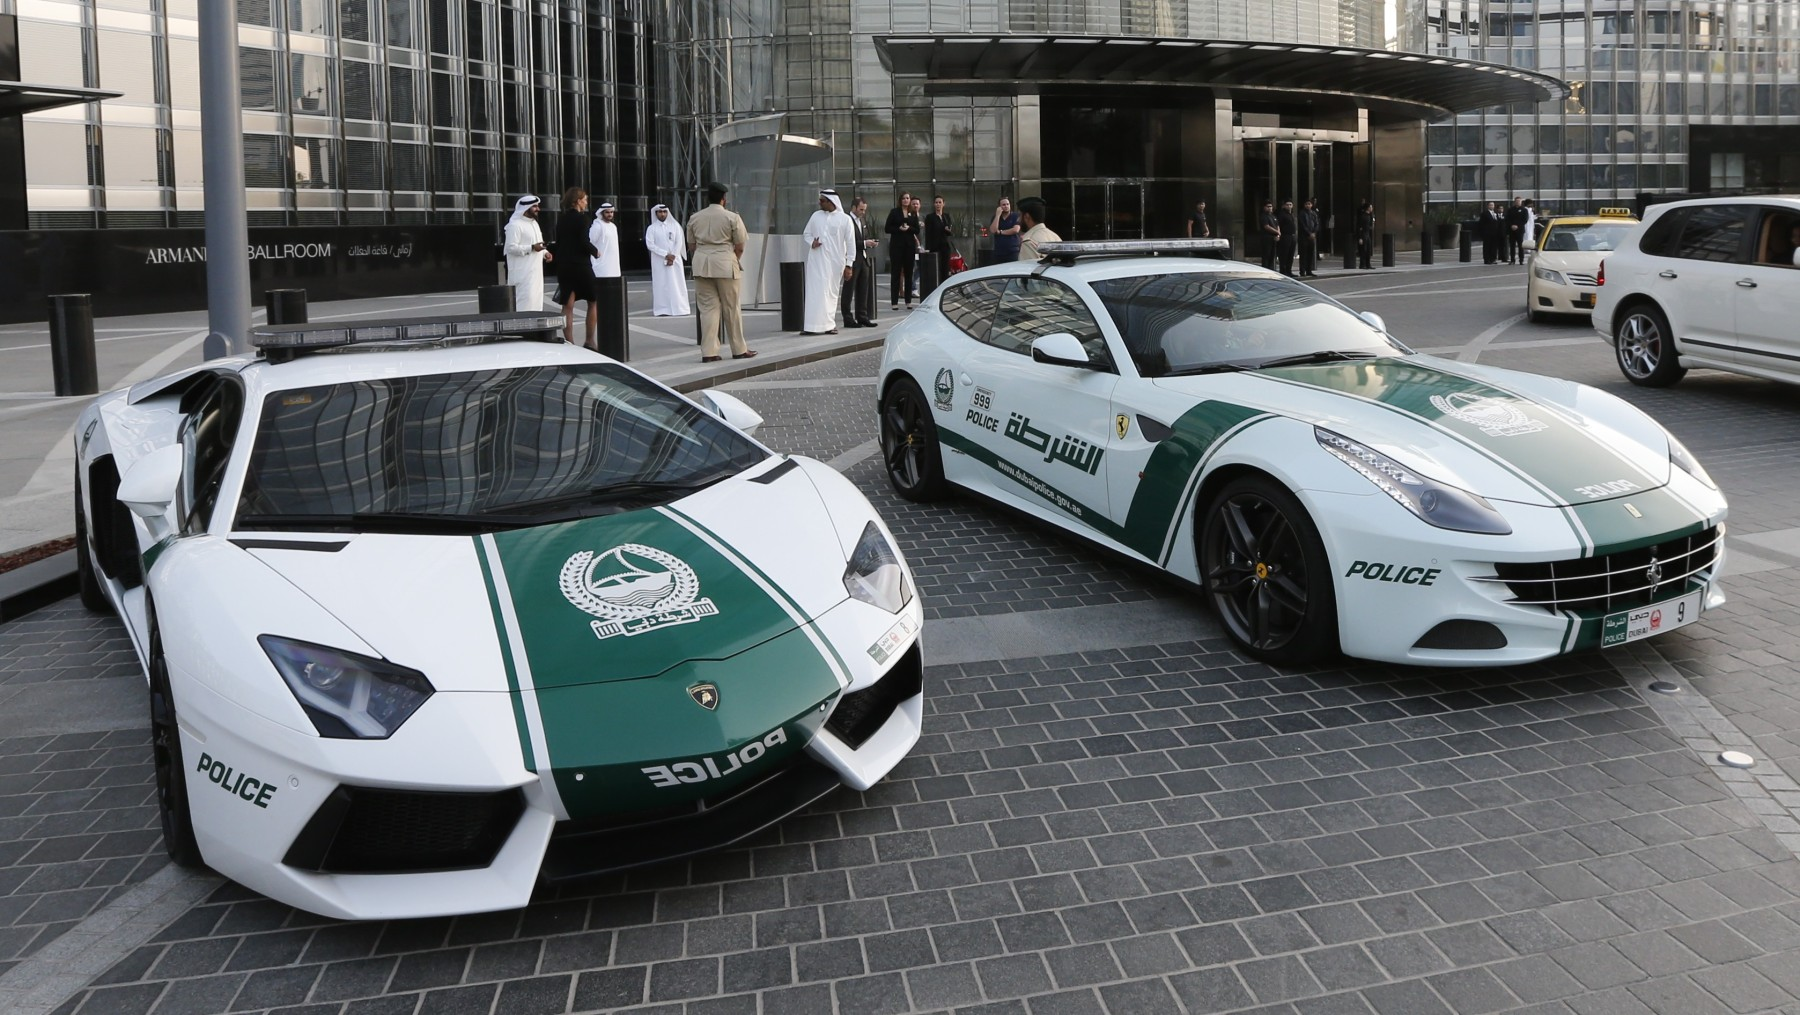 """A picture taken on April 25, 2013 shows Lamborghini (L) and Ferrari police vehicles at the foot of the Burj Khalifa tower in the Gulf emirate of Dubai. Two weeks after introducing the Lamborghini police car, Dubai Police has introduced a Ferrari to the fleet, to further strengthen the """"image of luxury and prosperity"""" of the emirate. AFP  PHOTO /  KARIM SAHIB        (Photo credit should read KARIM SAHIB/AFP/Getty Images)"""